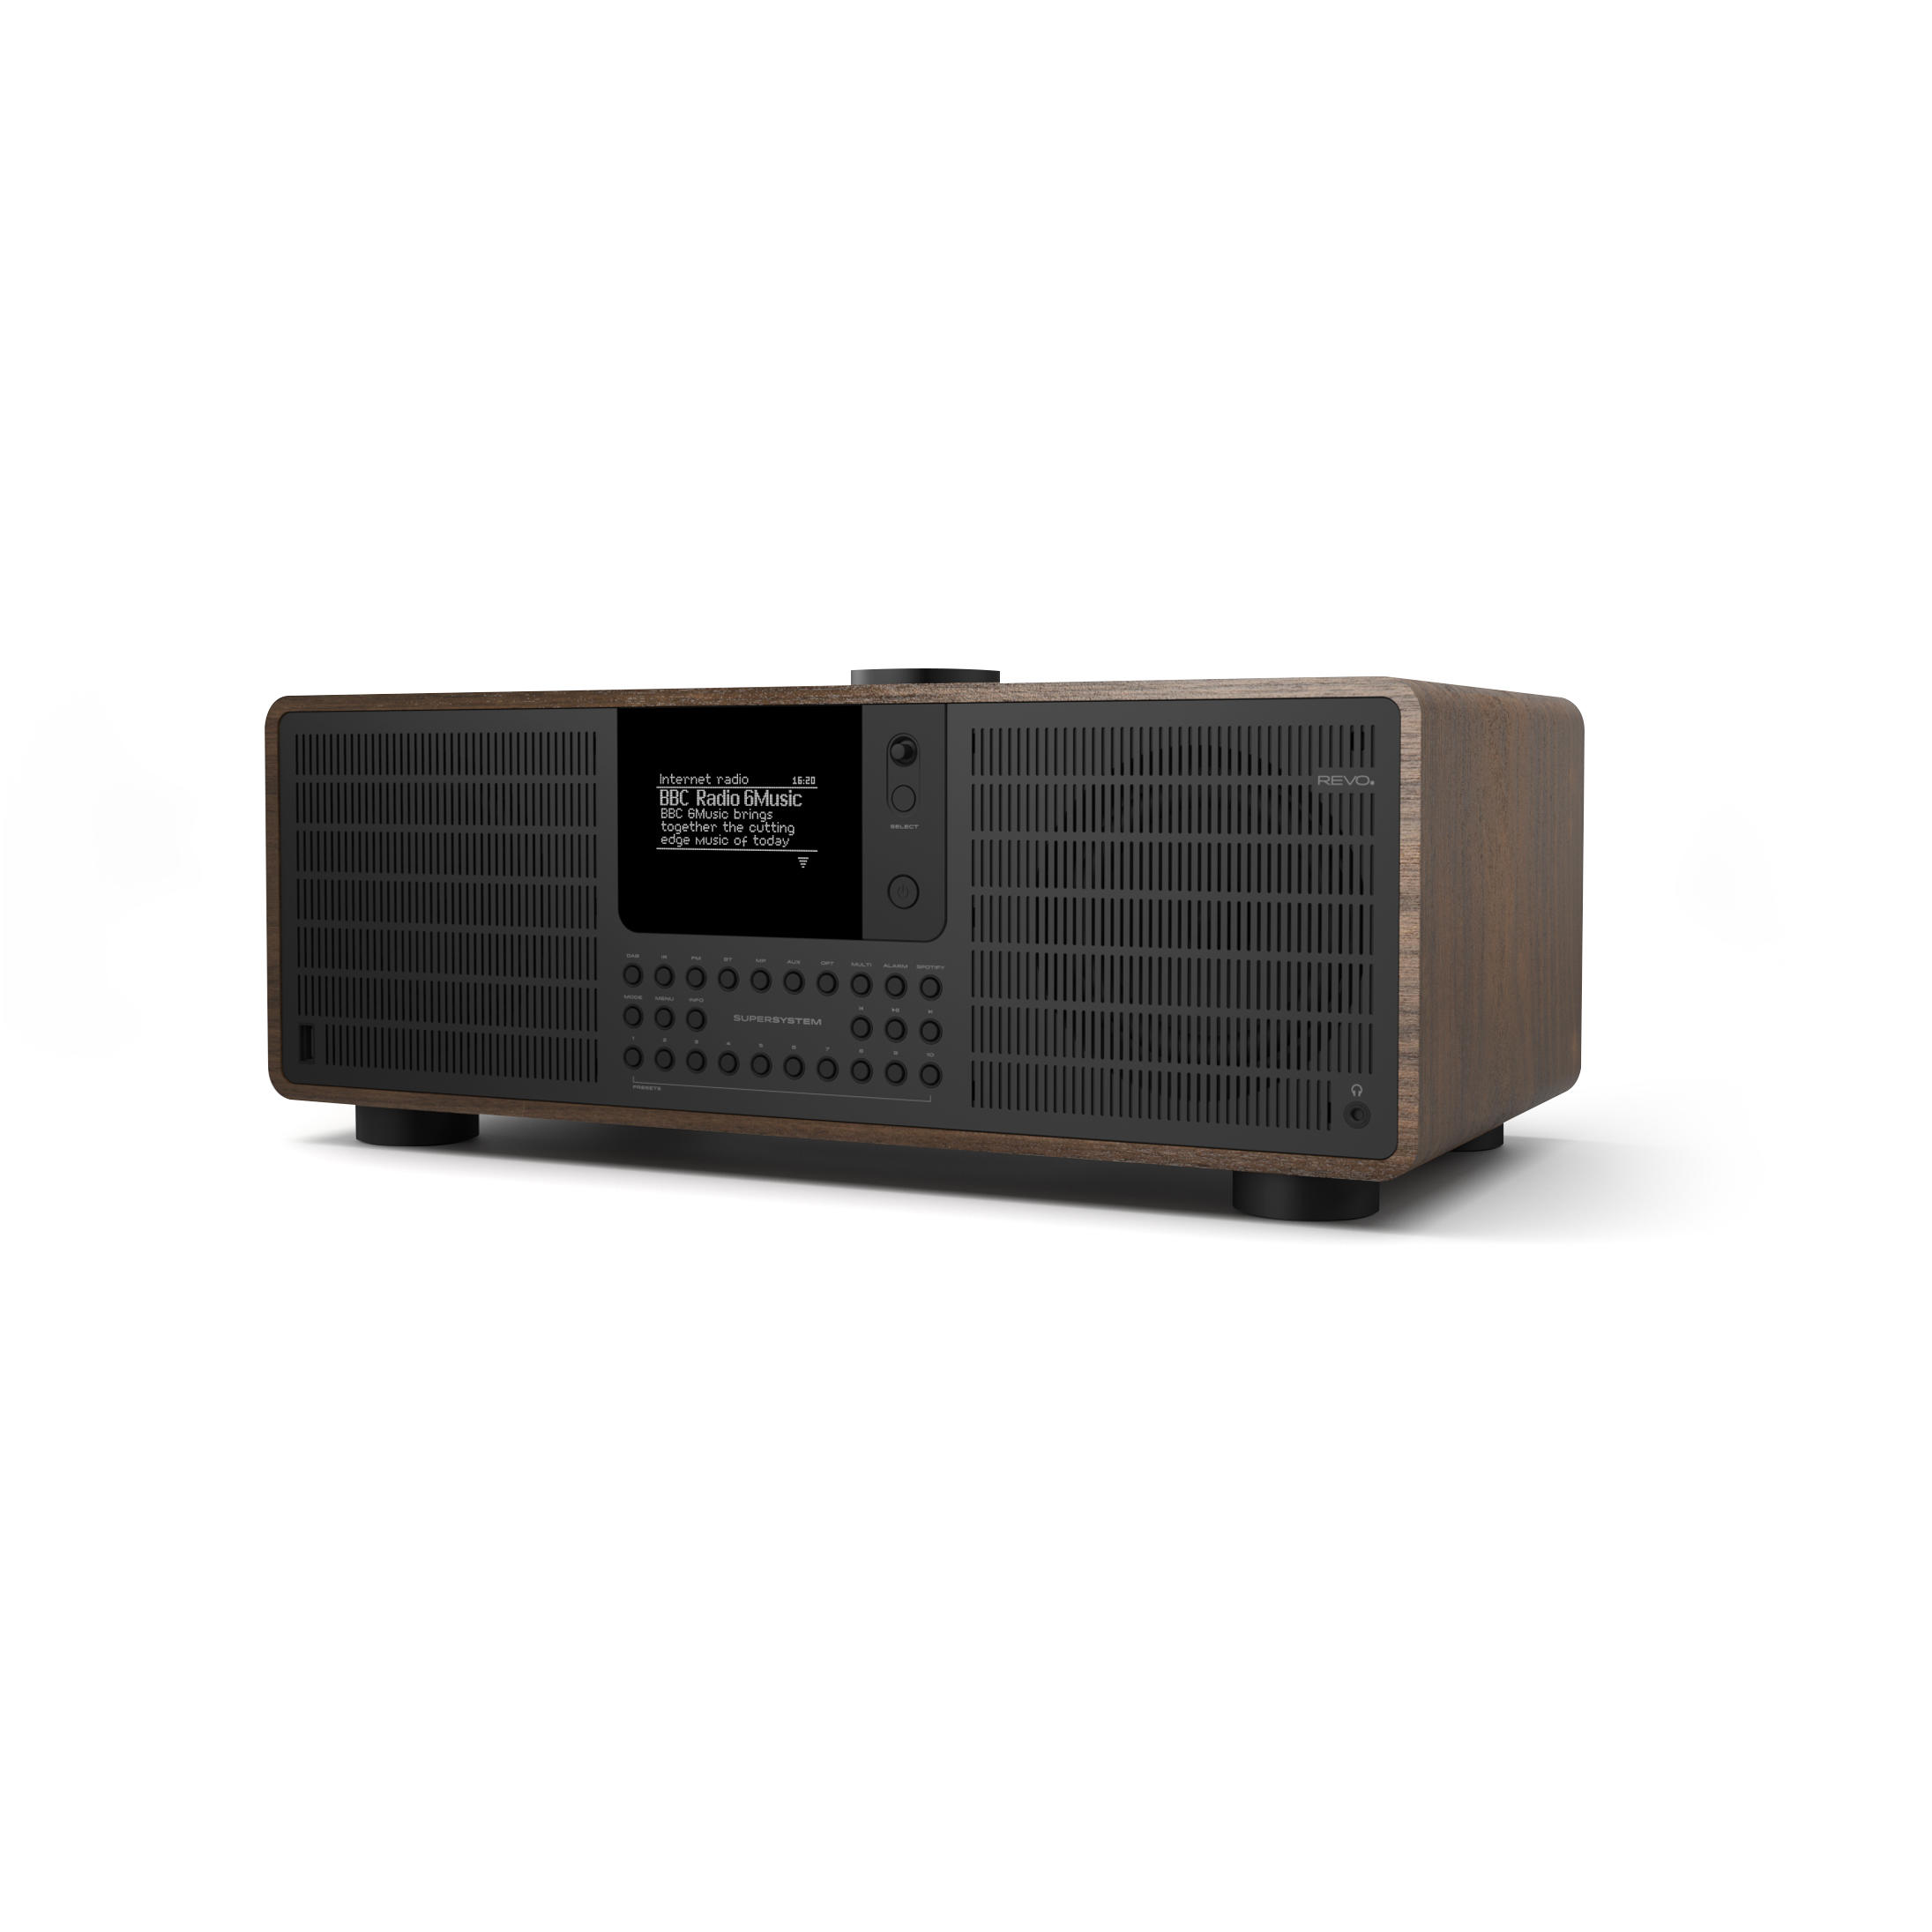 Revo SuperSystem DAB Internet Radio With Spotify - Walnut / Black